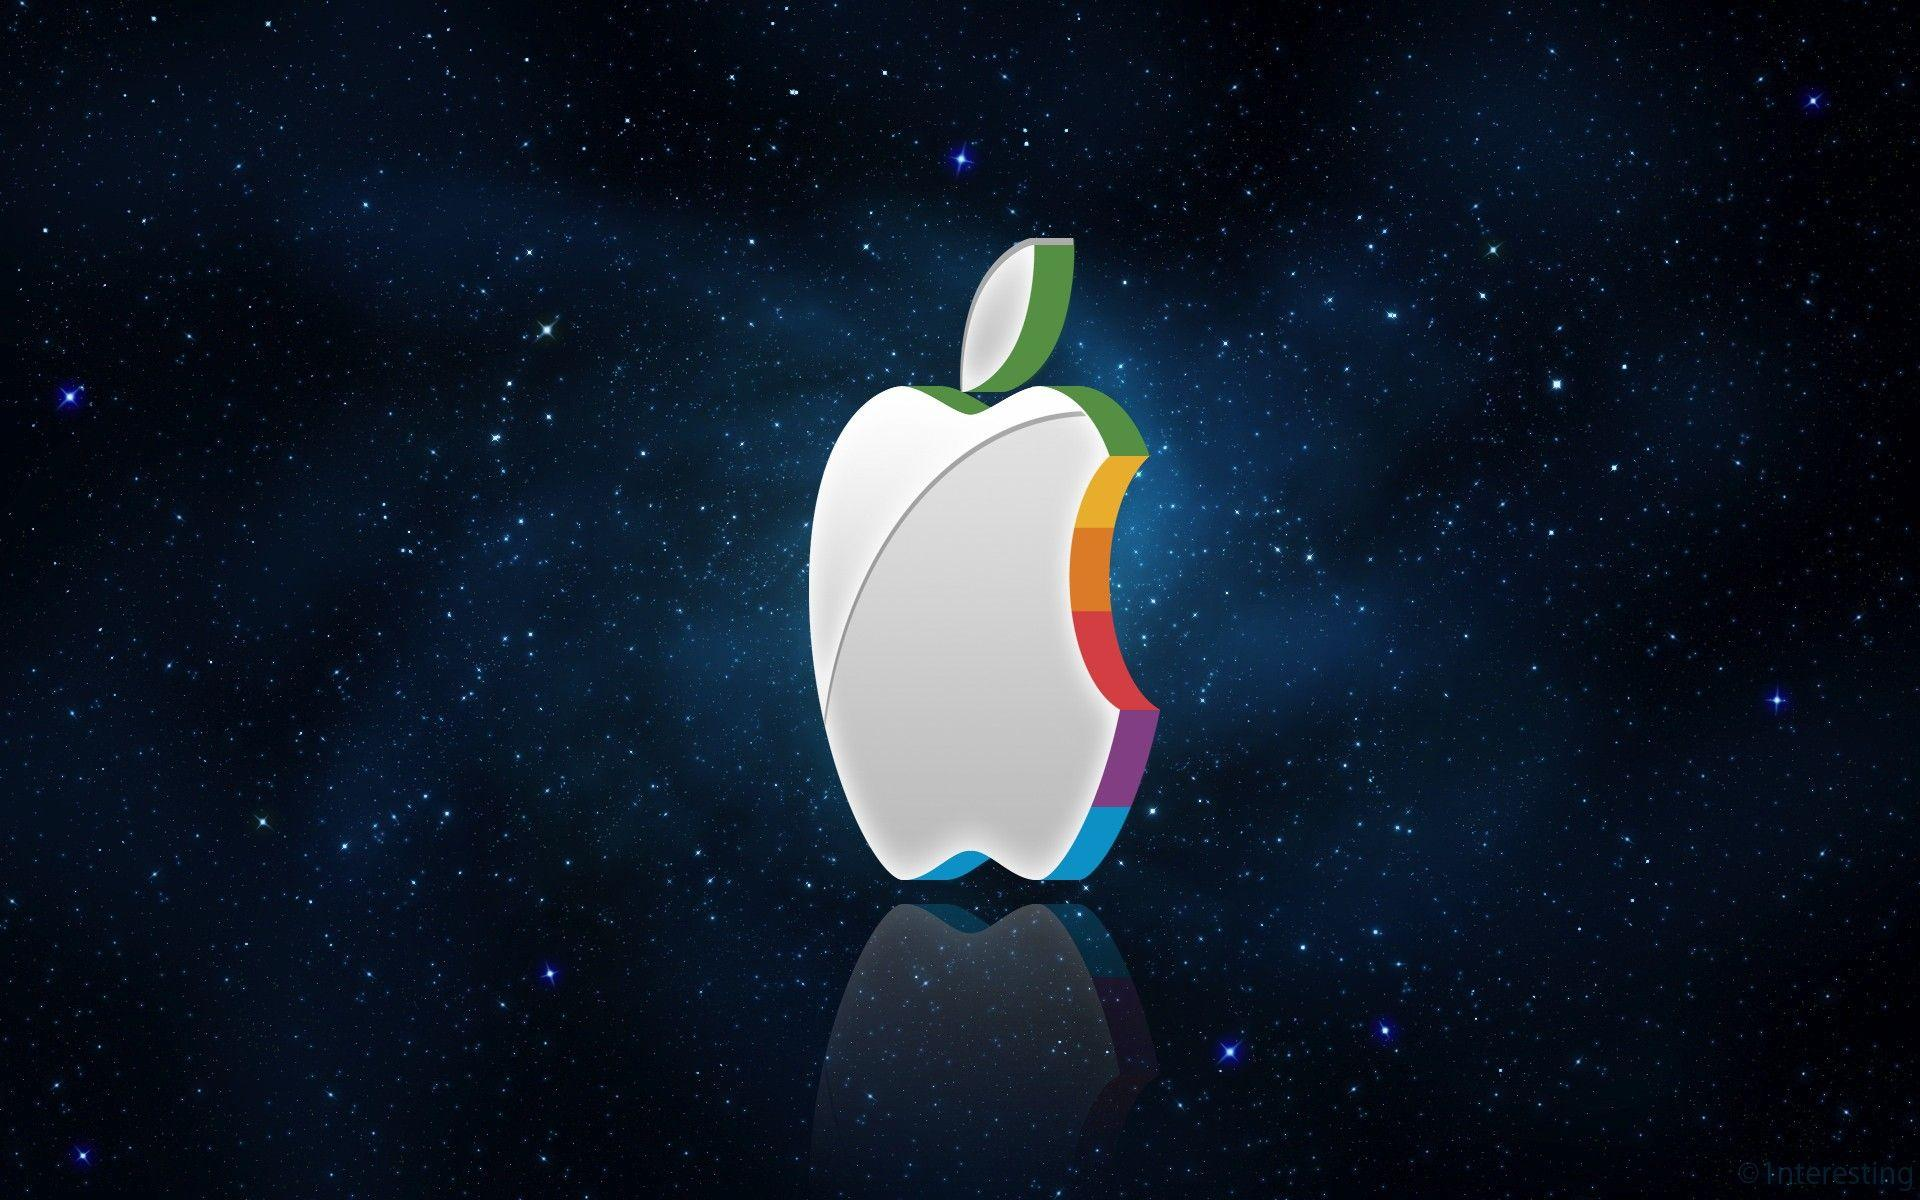 Cool Apple Logos Hd Image 3 HD Wallpapers